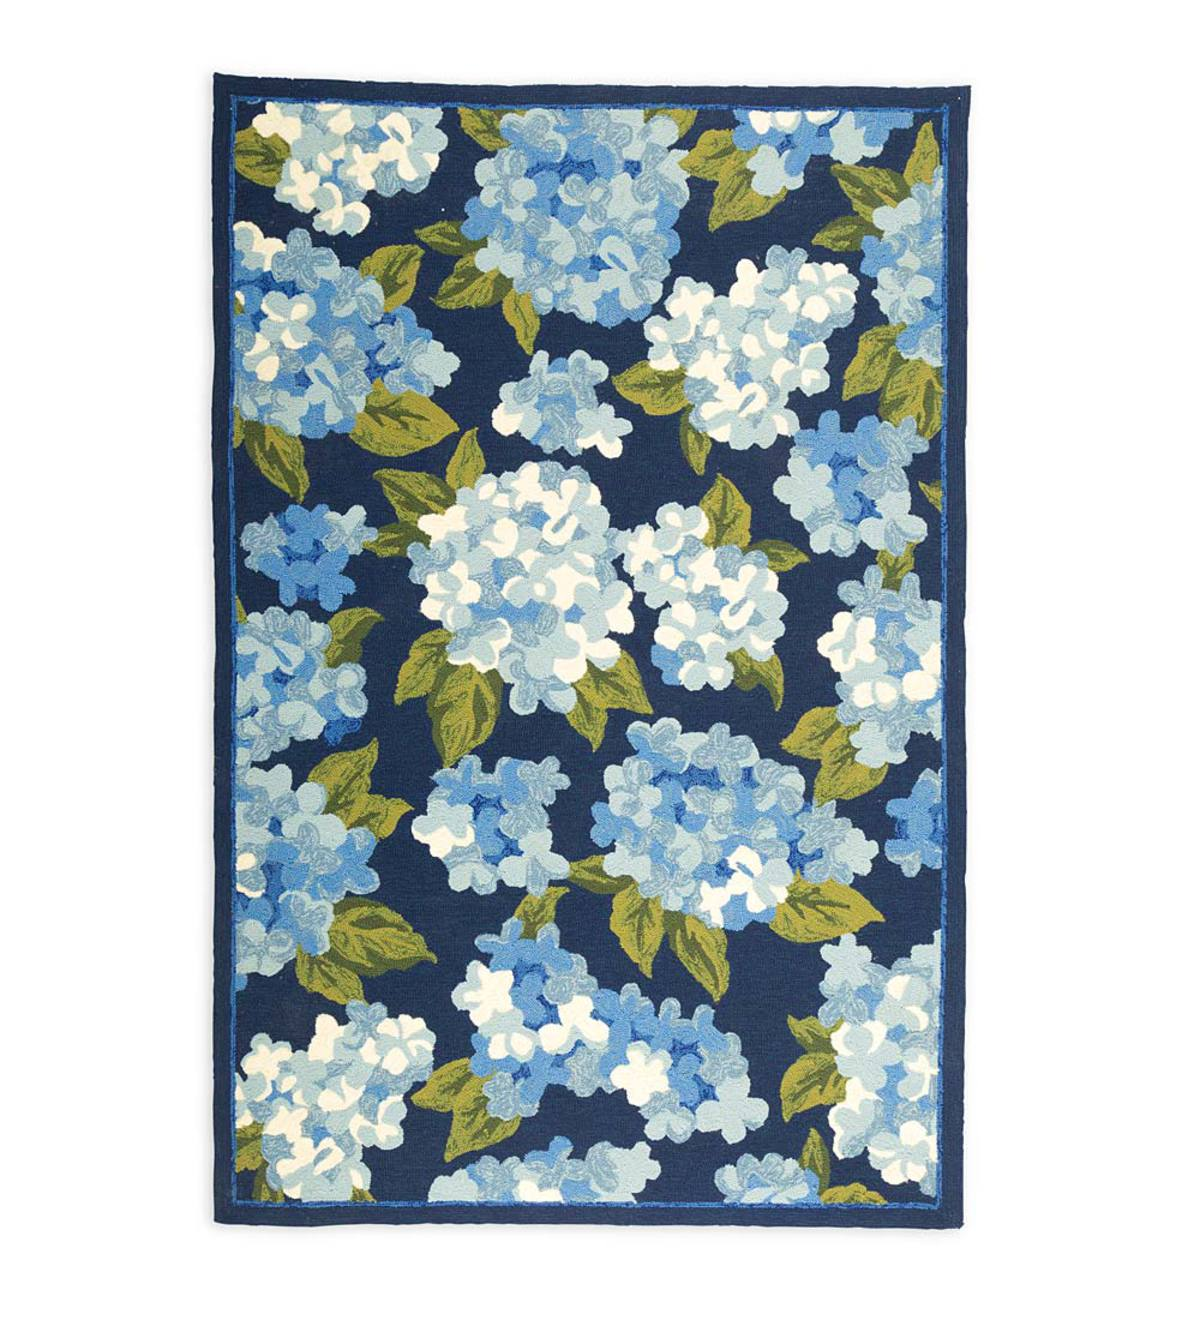 Hydrangeas Indoor/Outdoor Rug, 8' x 10'